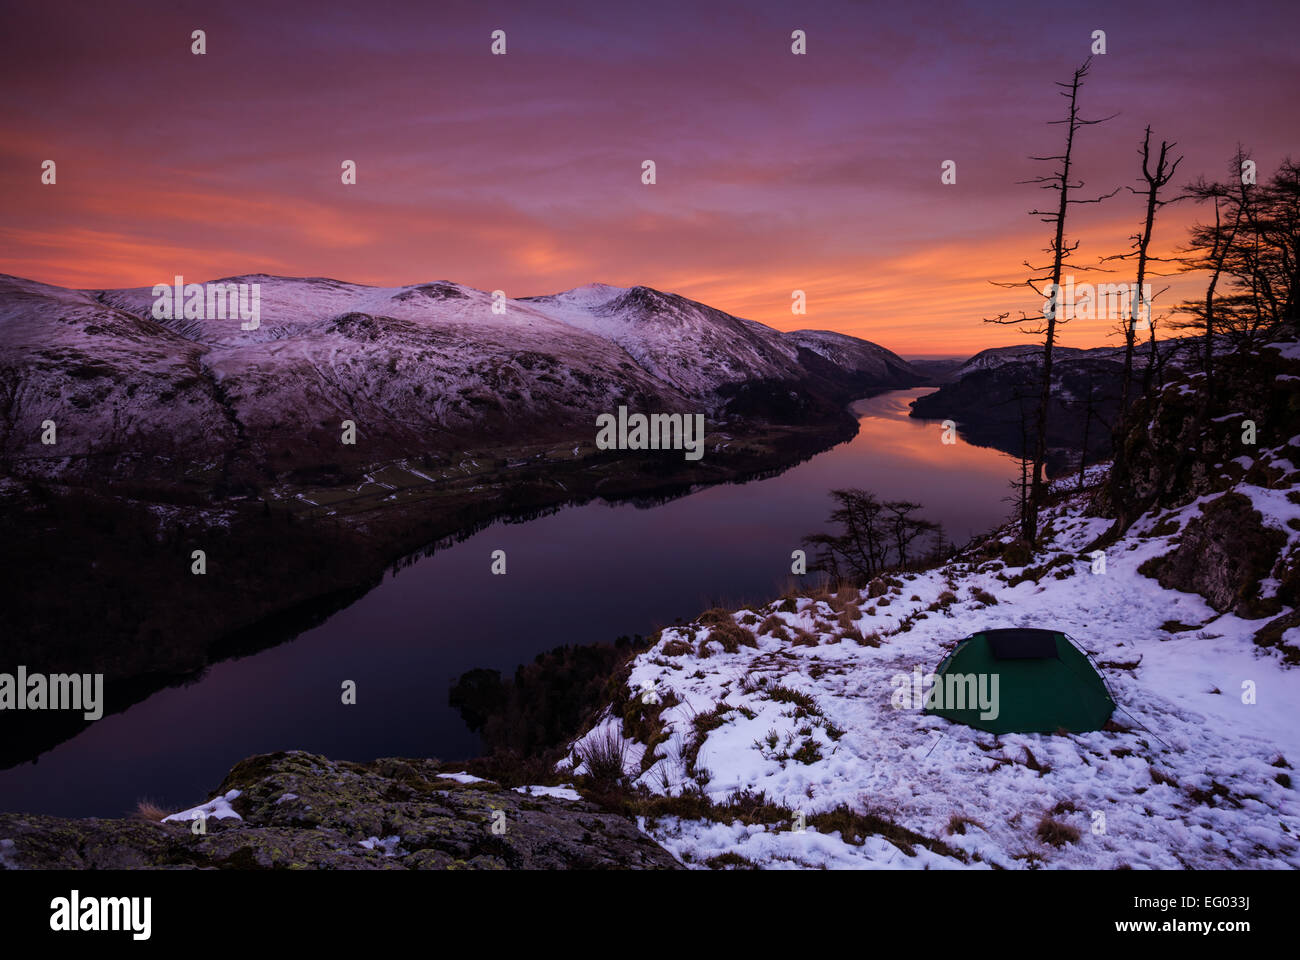 Wild camp tent at twilight after a beautiful pink sunset at Raven Crag, Lake Thirlmere in the English Lake District. - Stock Image